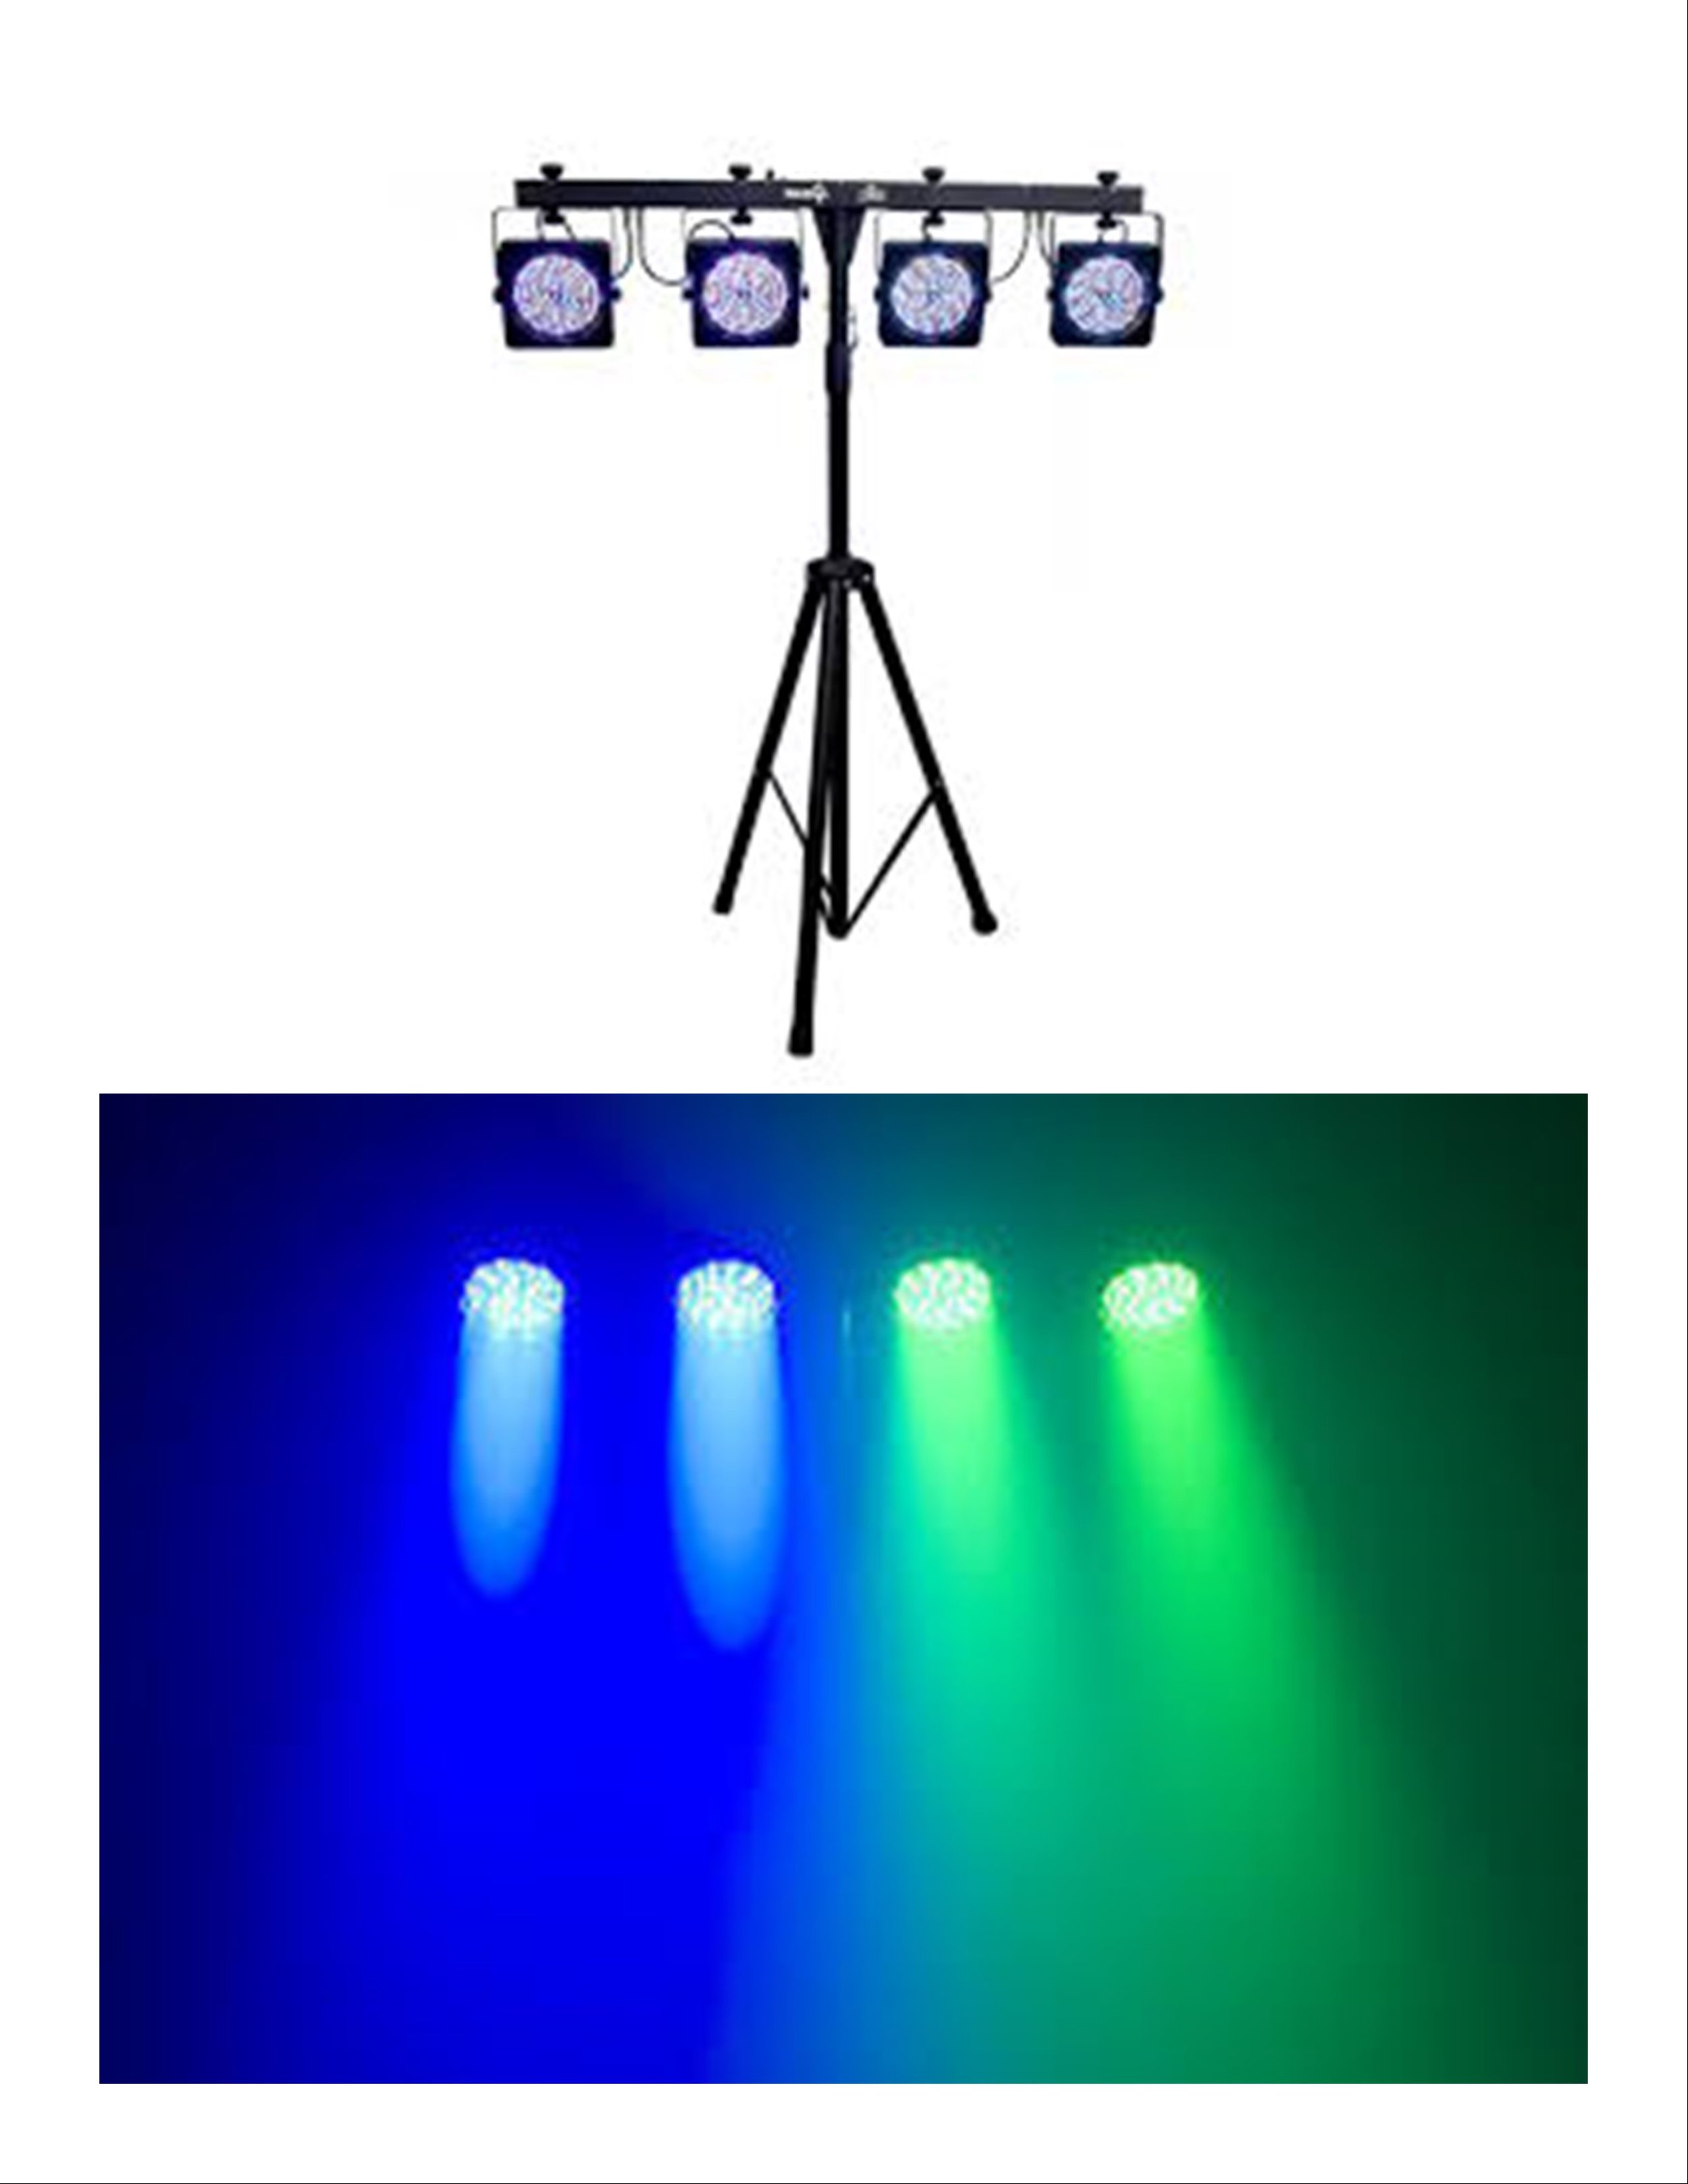 Party Lights$50.00 + tax - Combine this with our party light system for the ultimate dance party to handle birthday parties, wedding receptions or any other get together!